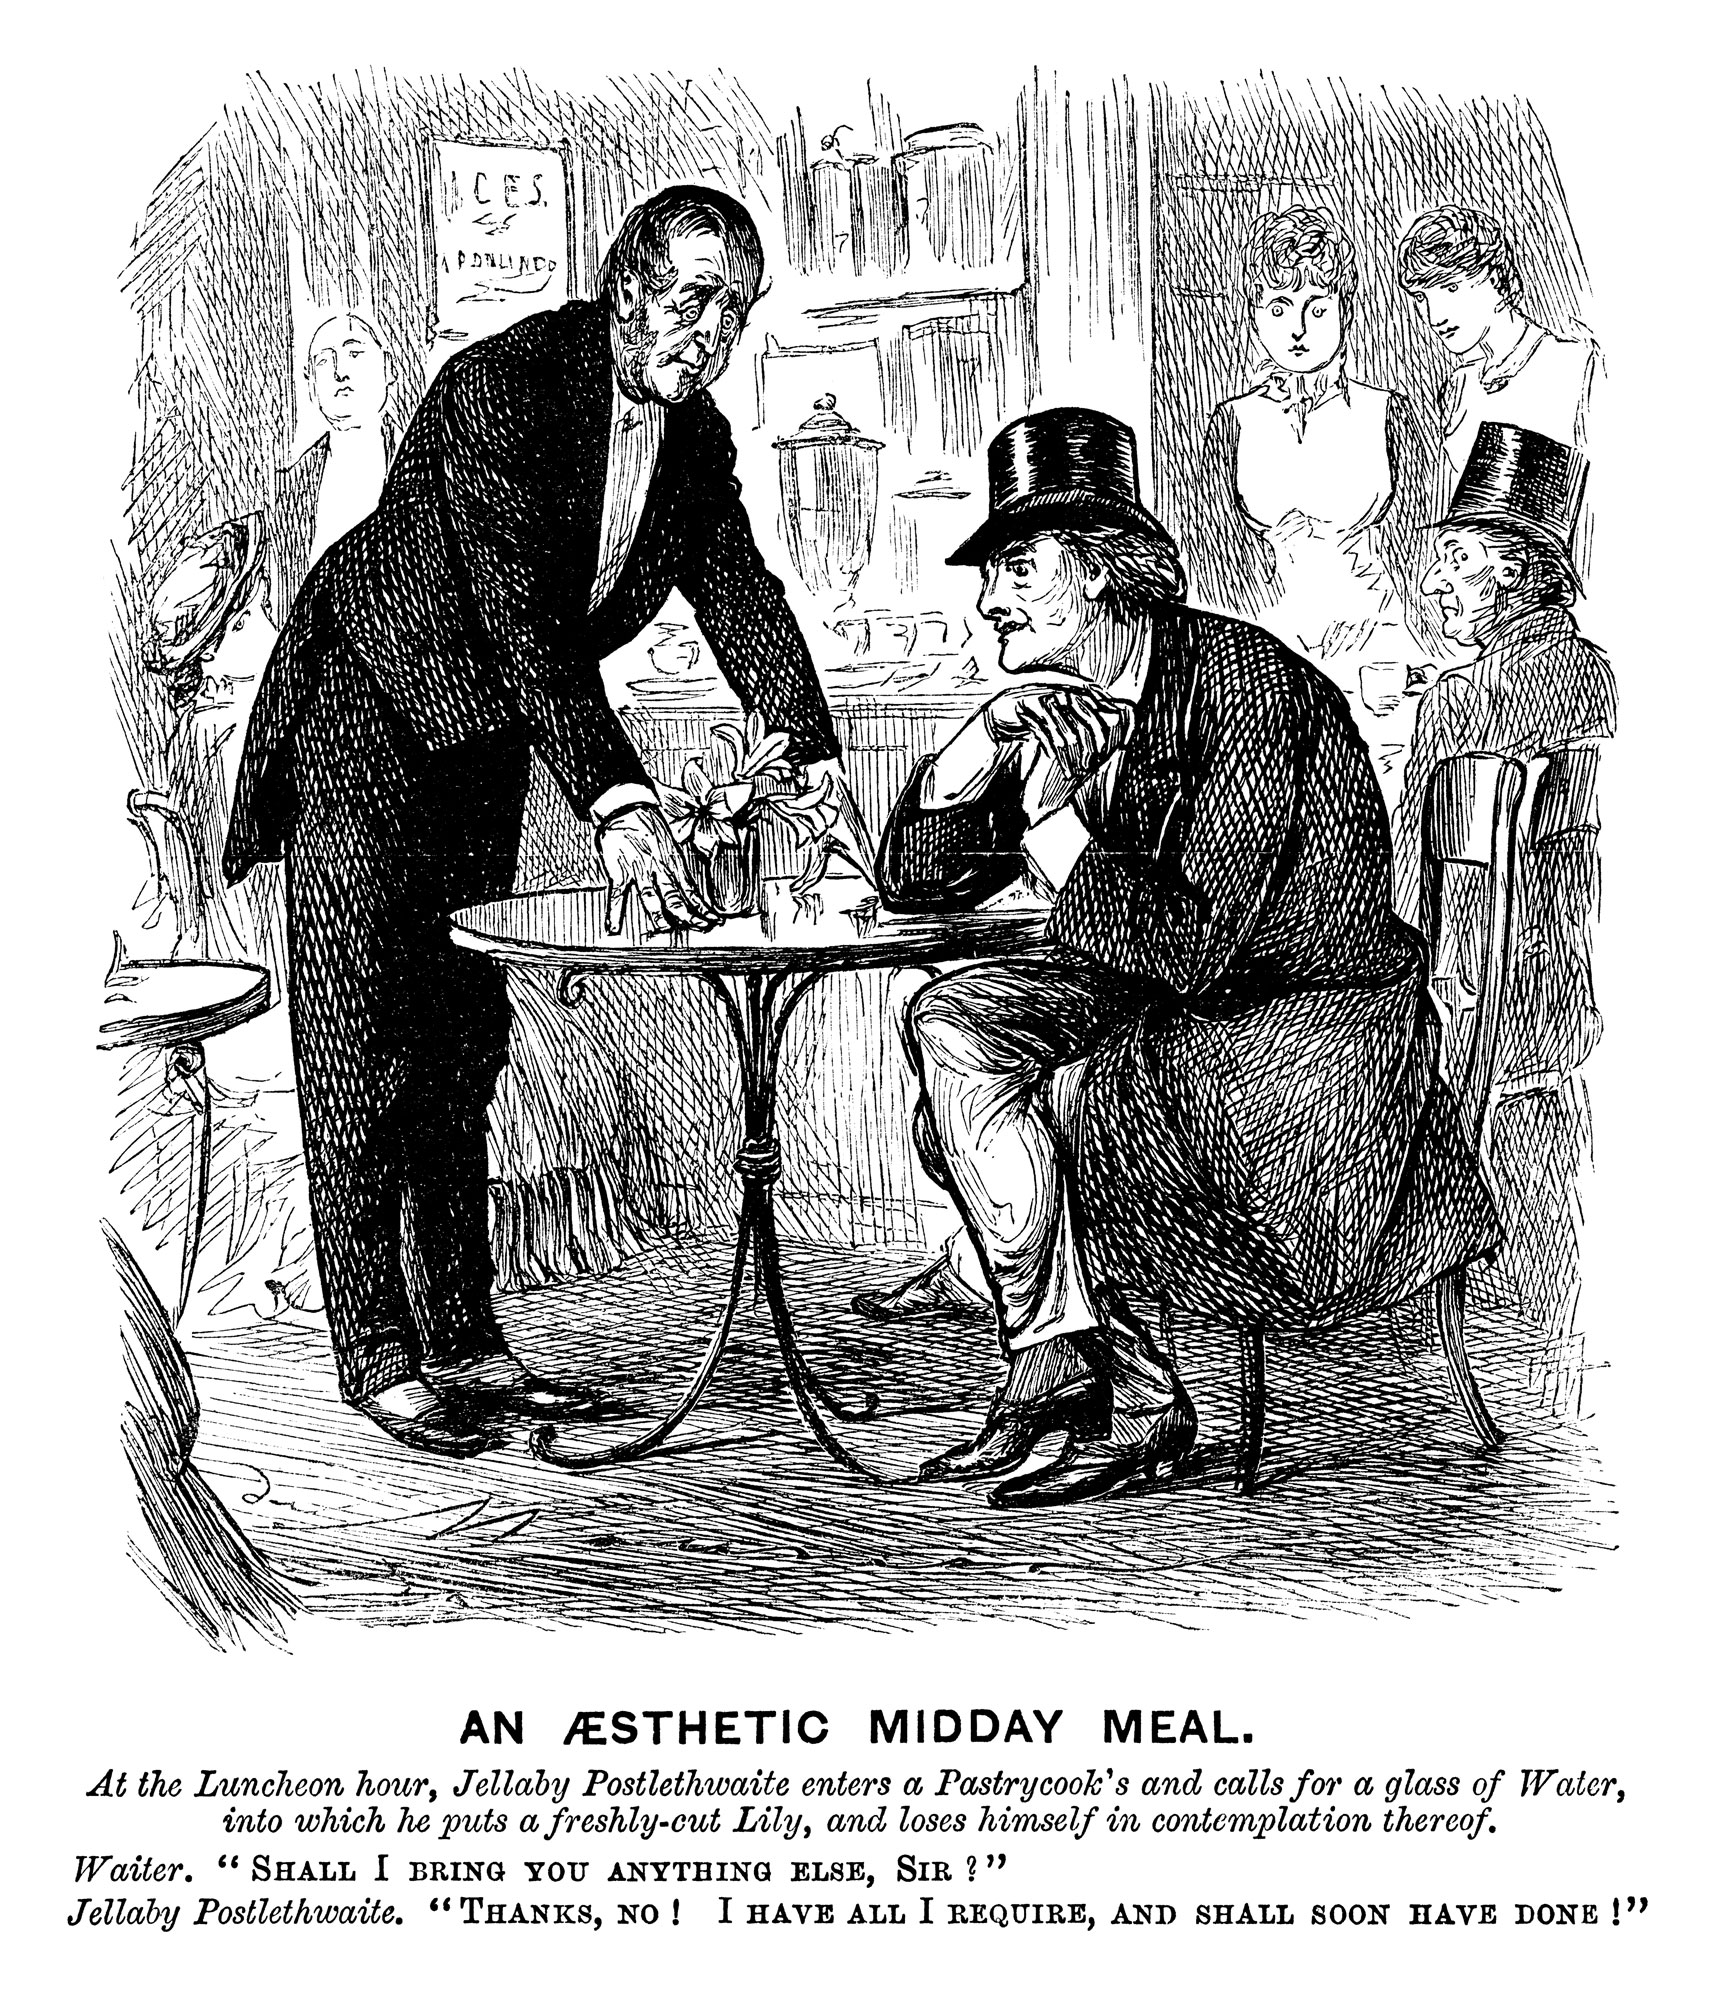 An Aesthetic Midday Meal, a satirical cartoon from Punch